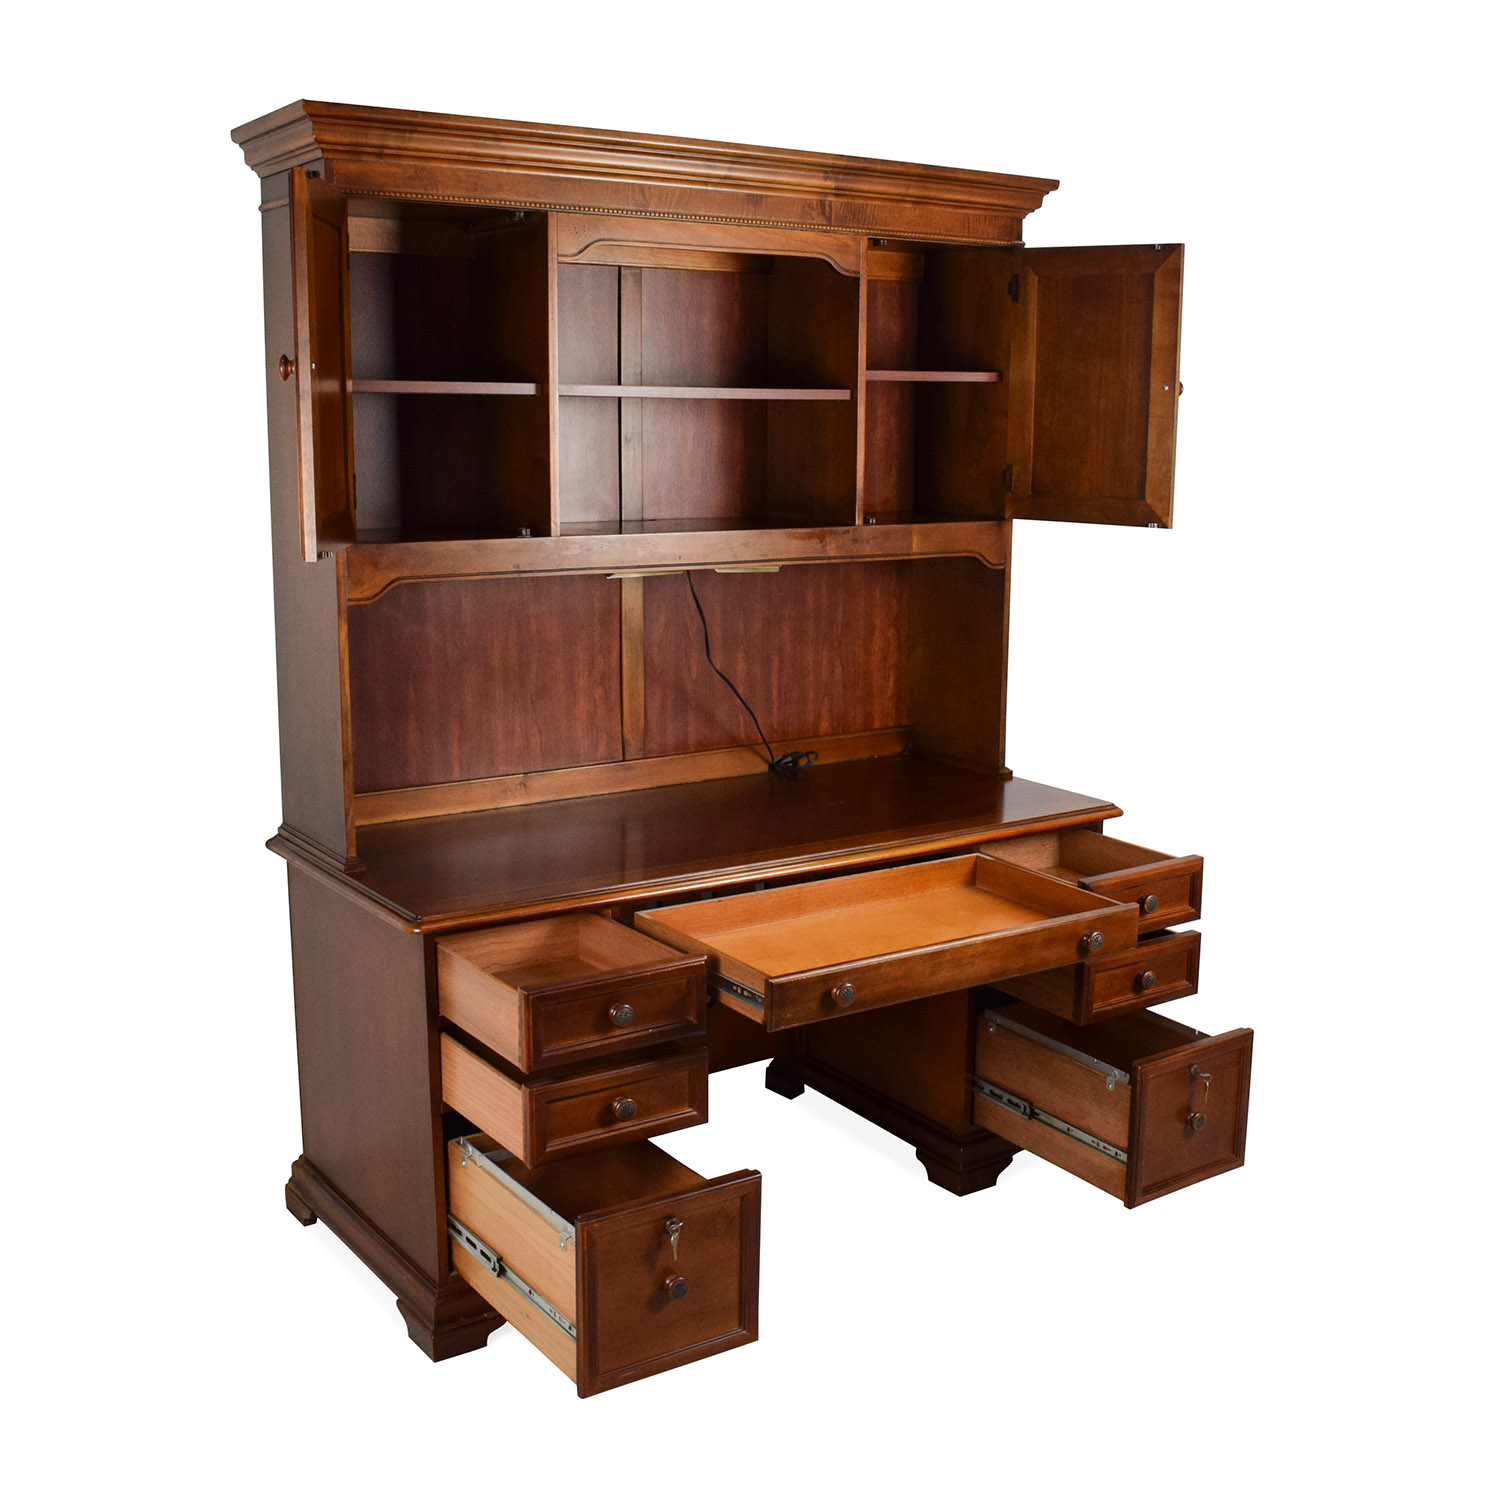 79 Off Hammary Furniture Hammary Furniture Wooden Desk With Hutch Tables